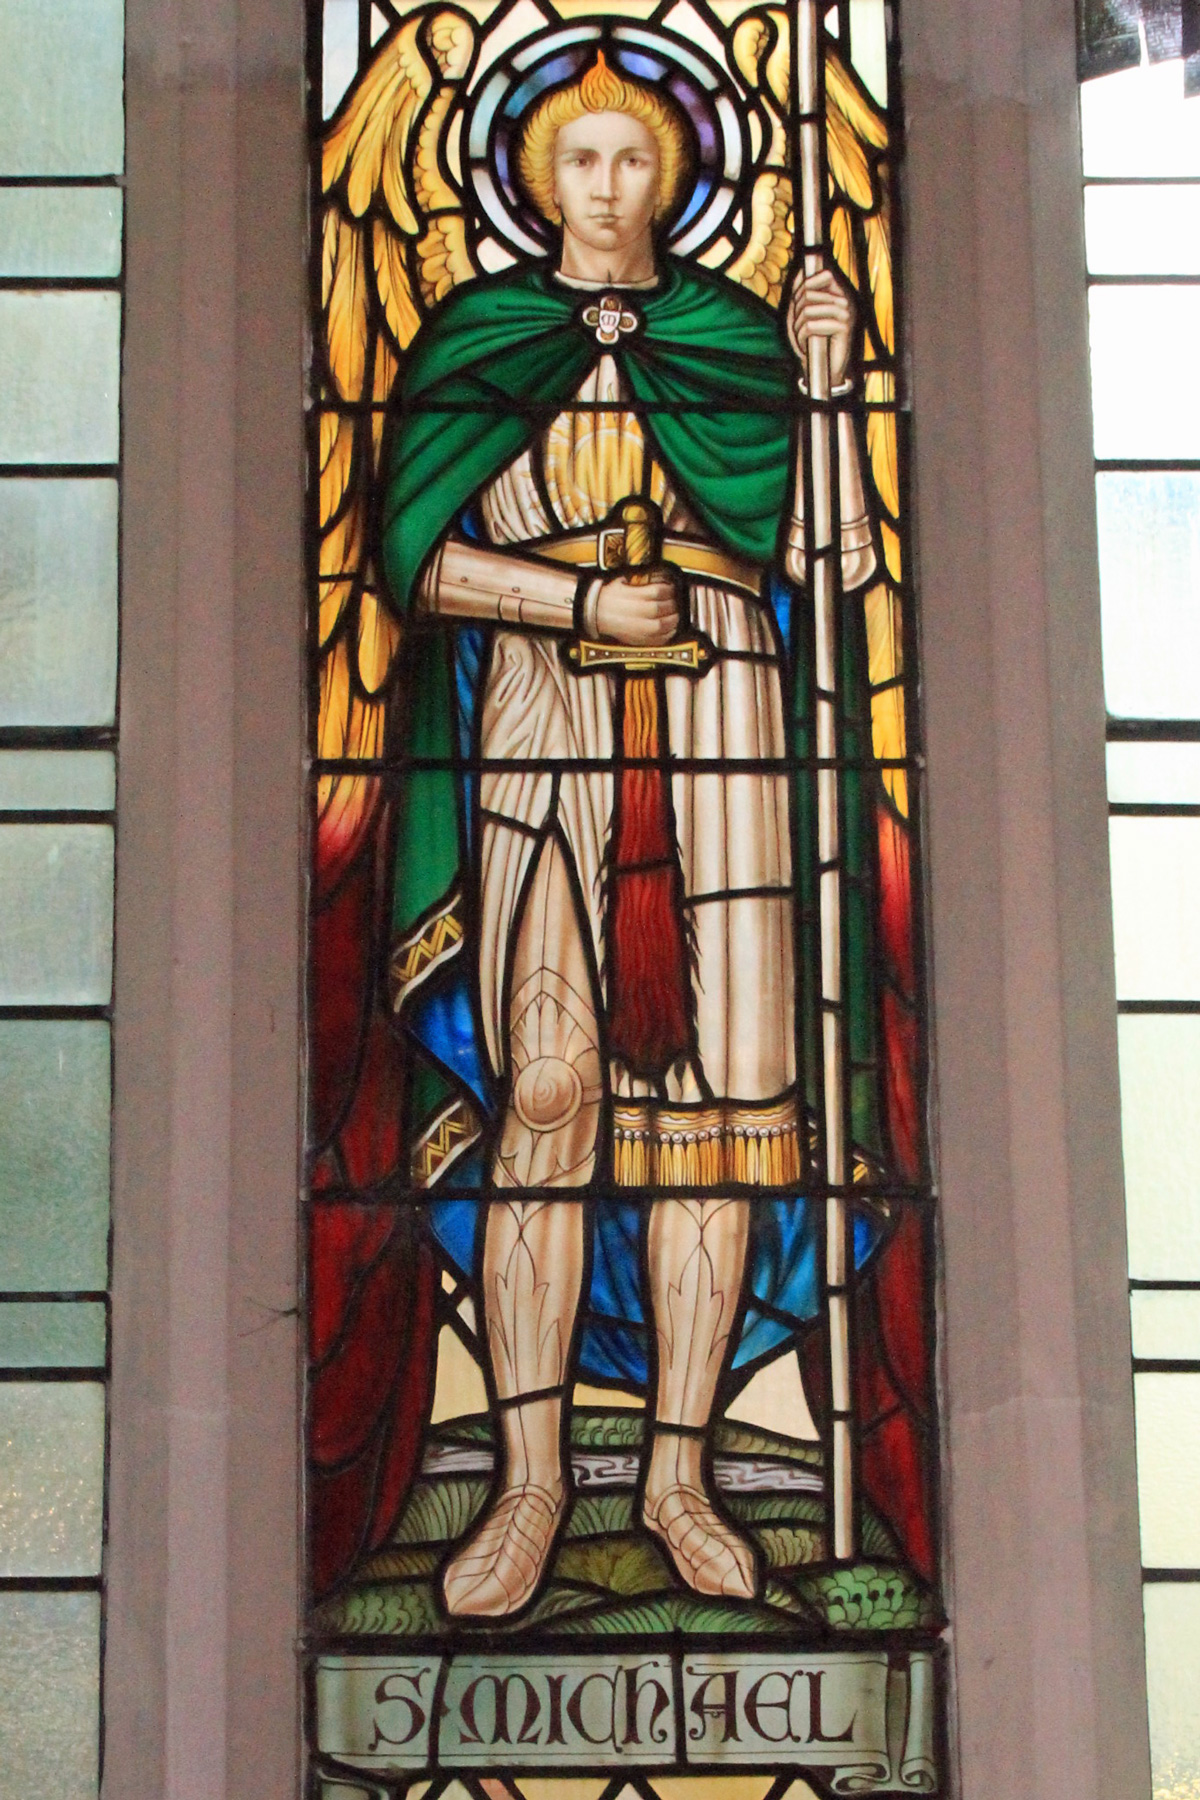 St. Michael window, at Acton Hill Church